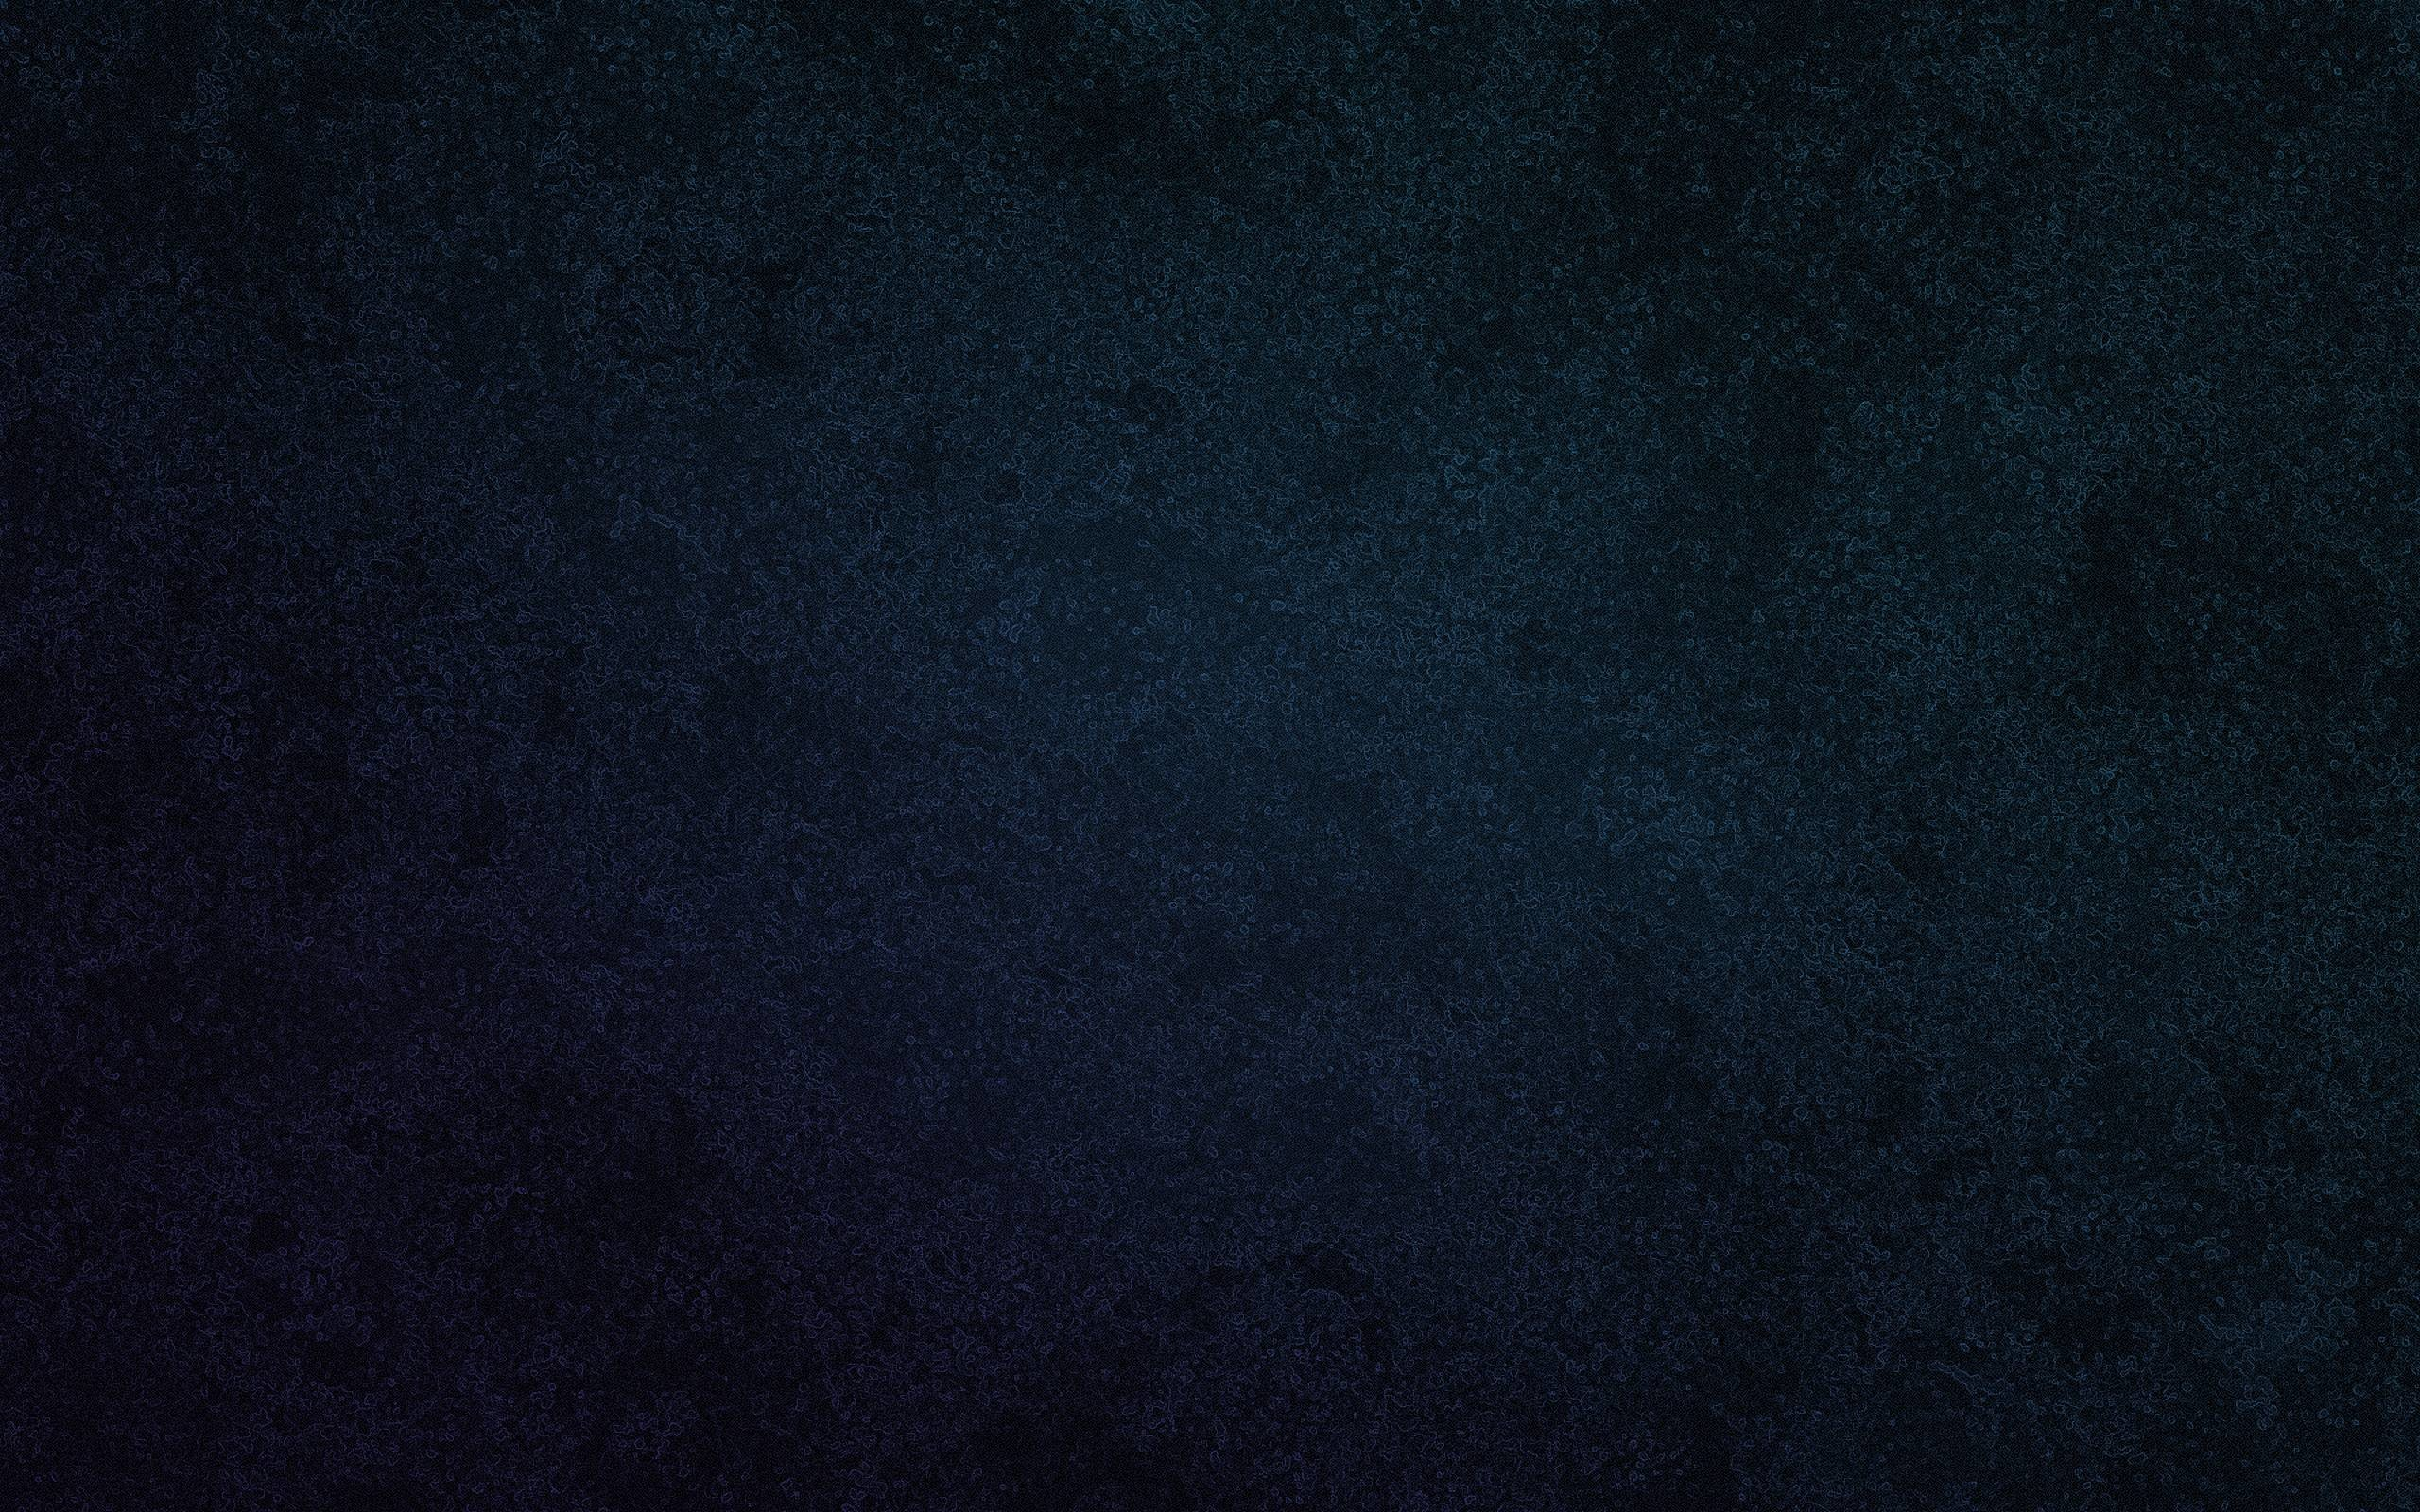 2560x1600 Texture Wallpapers 3860